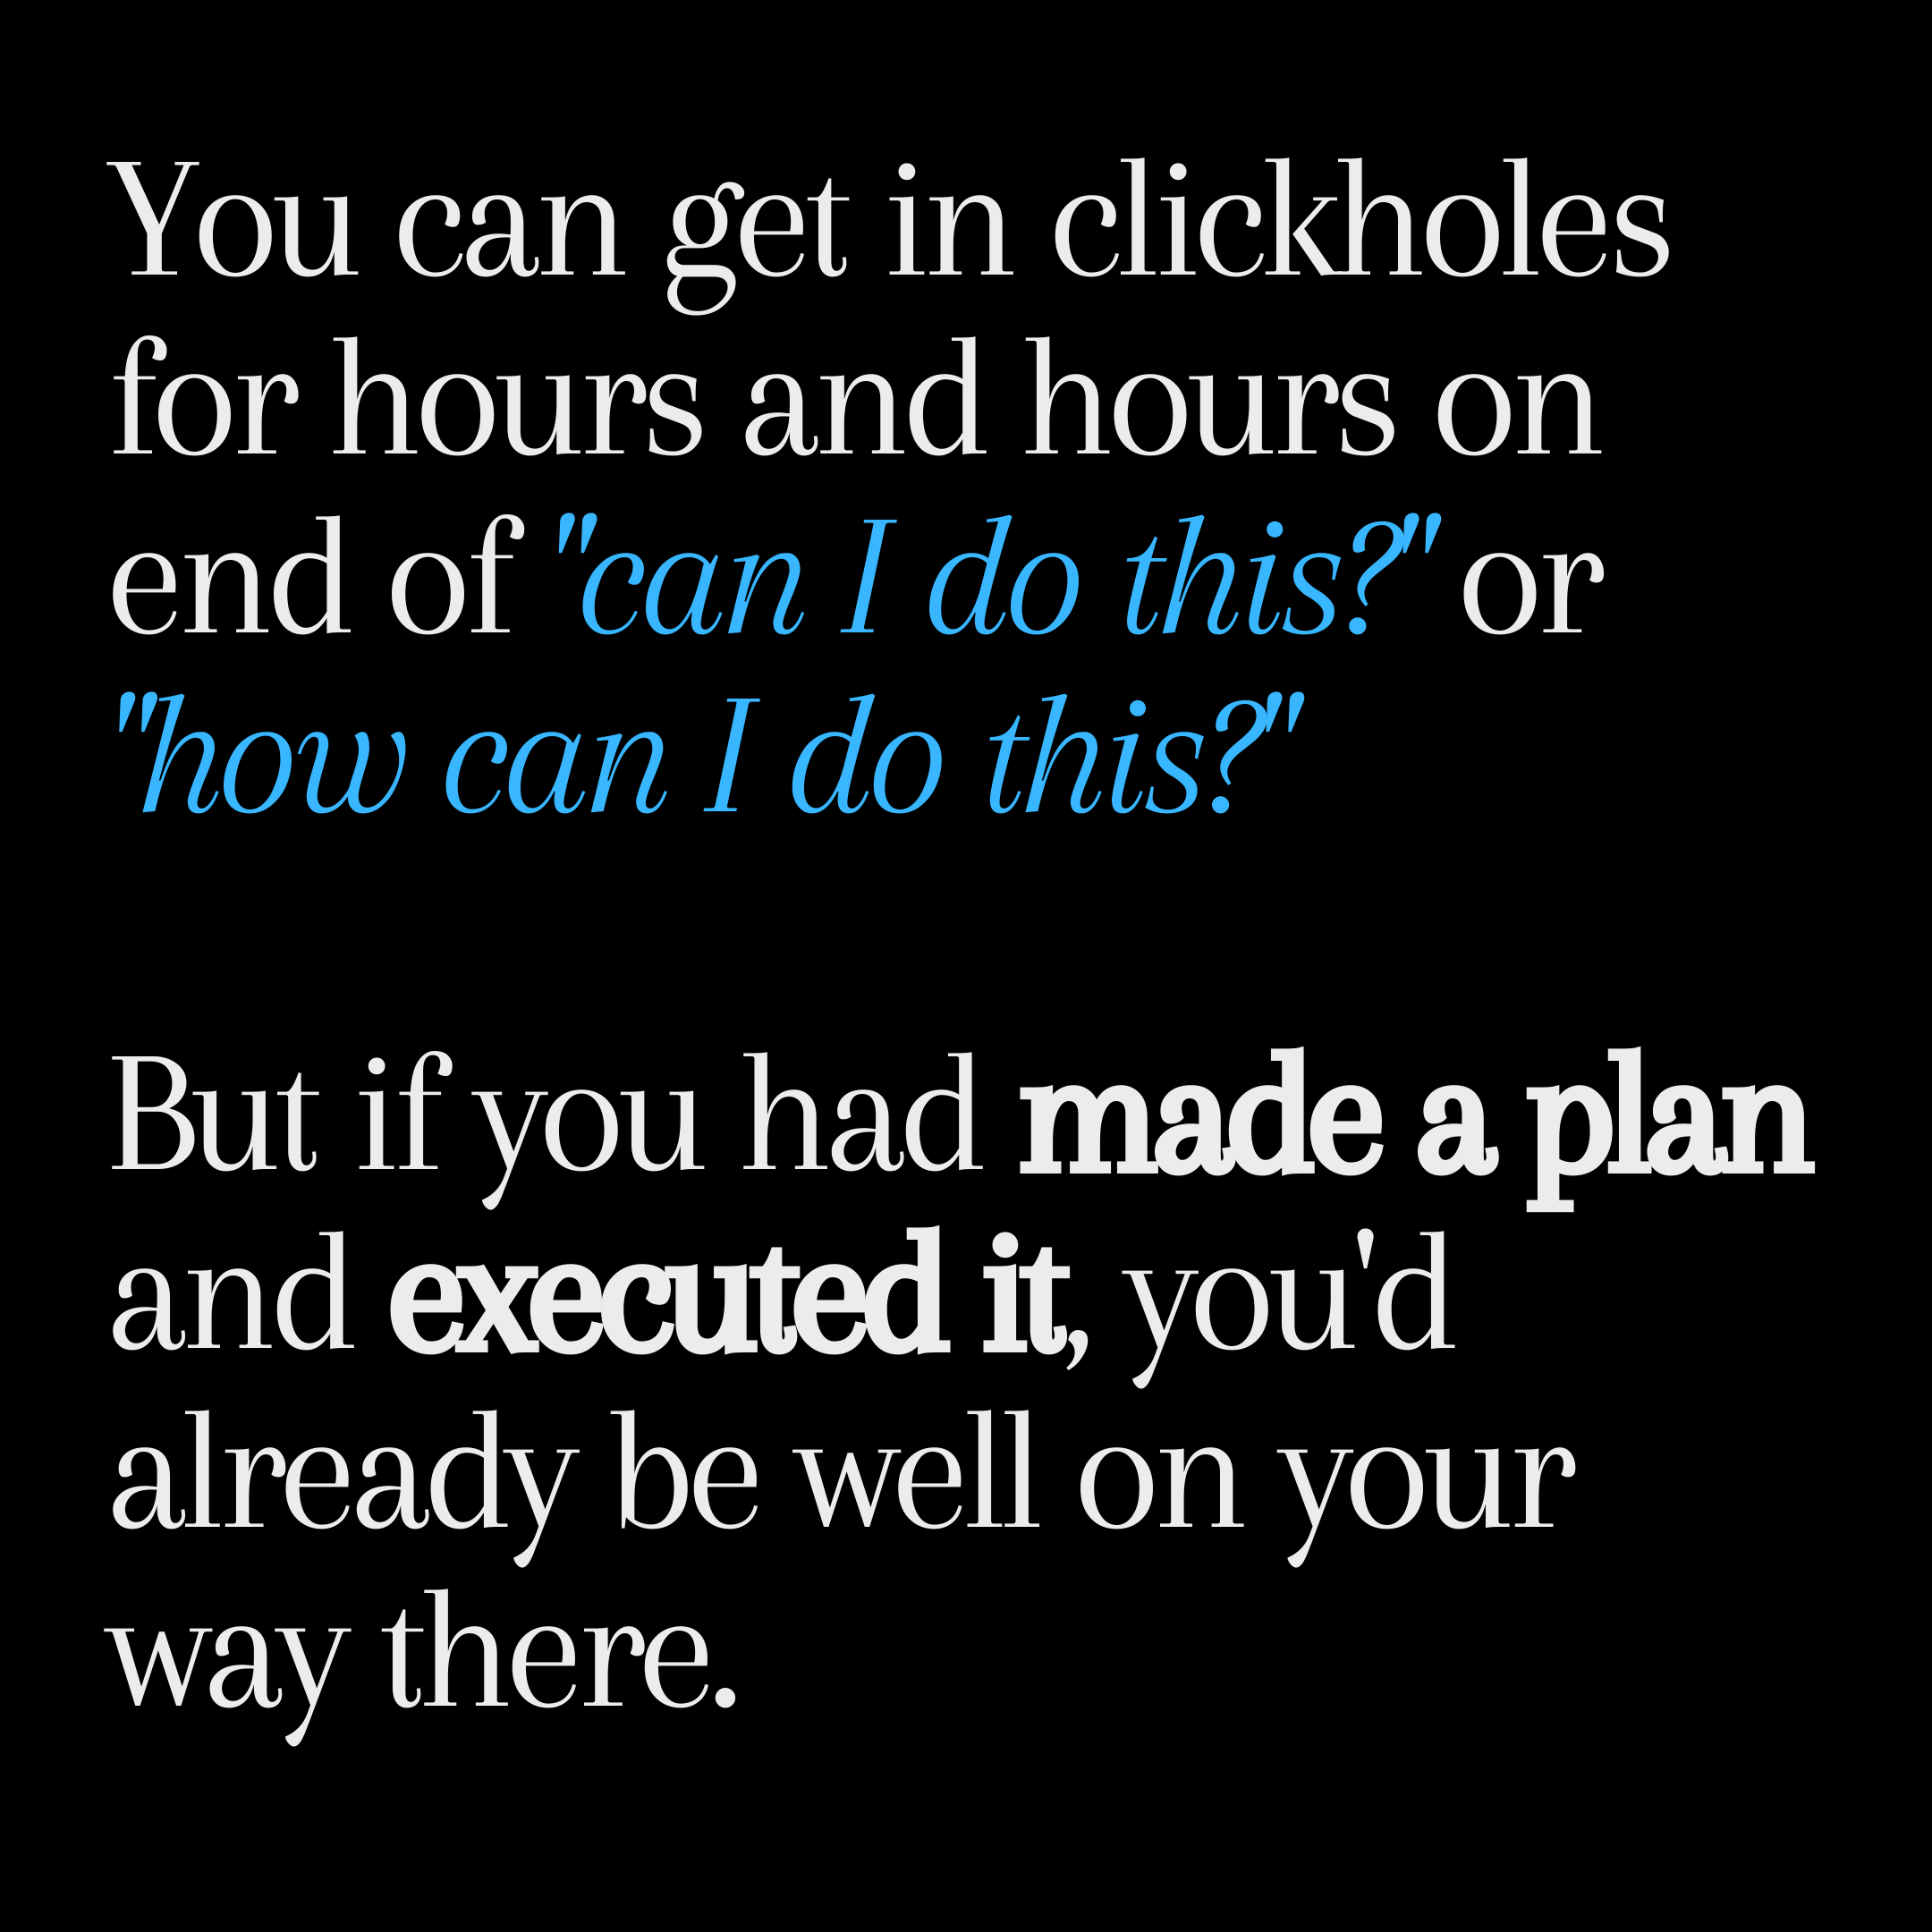 [IMAGE] Make a plan and execute it!